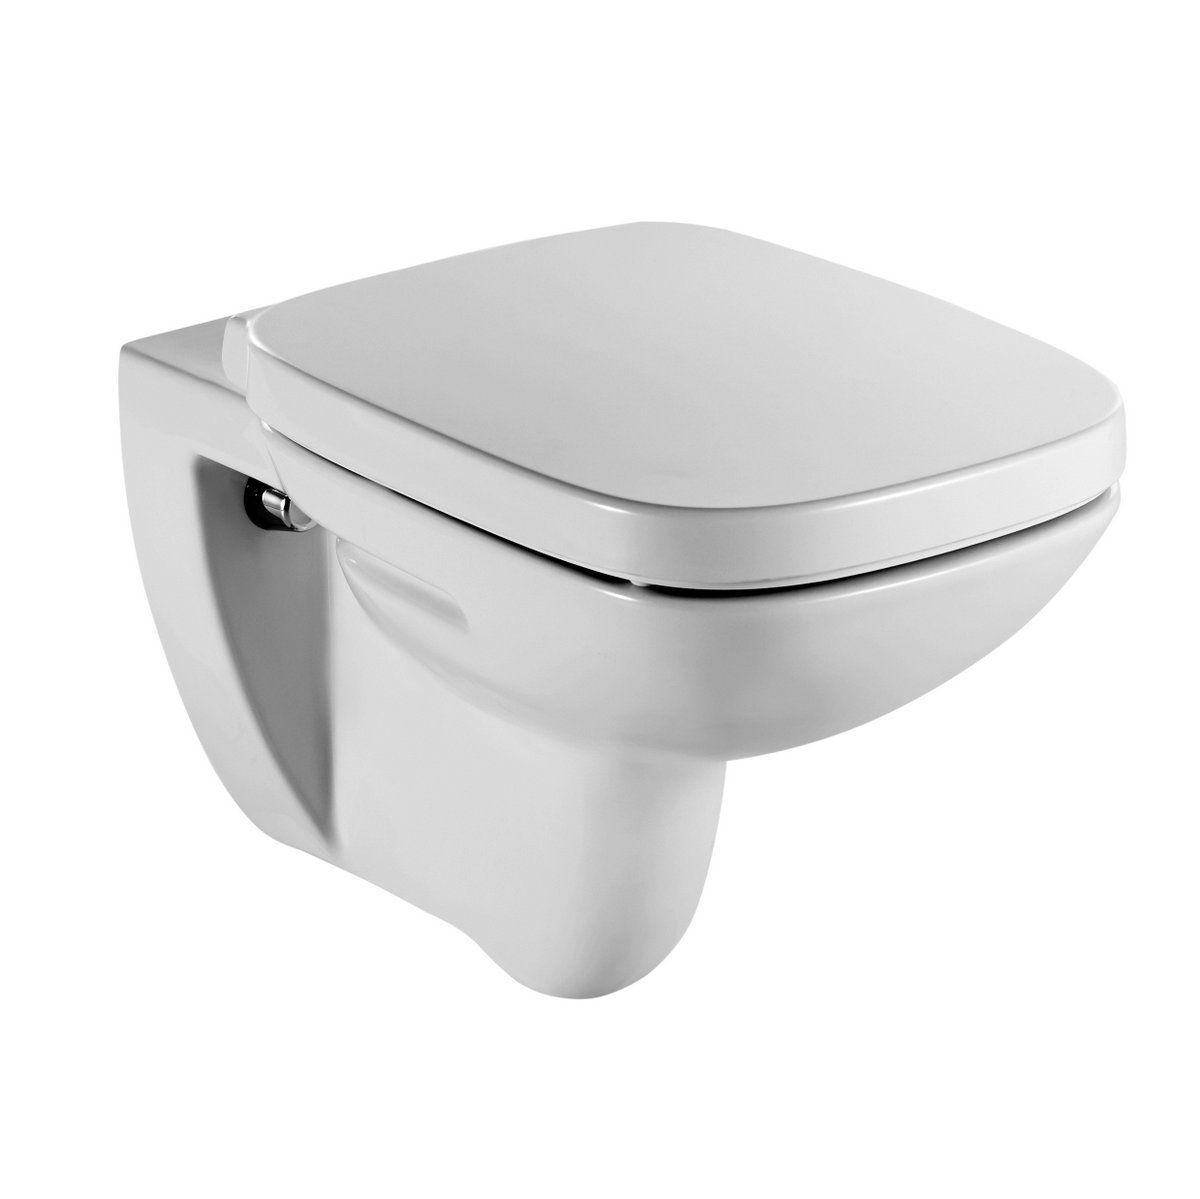 roca debba wall hung toilet uk bathrooms